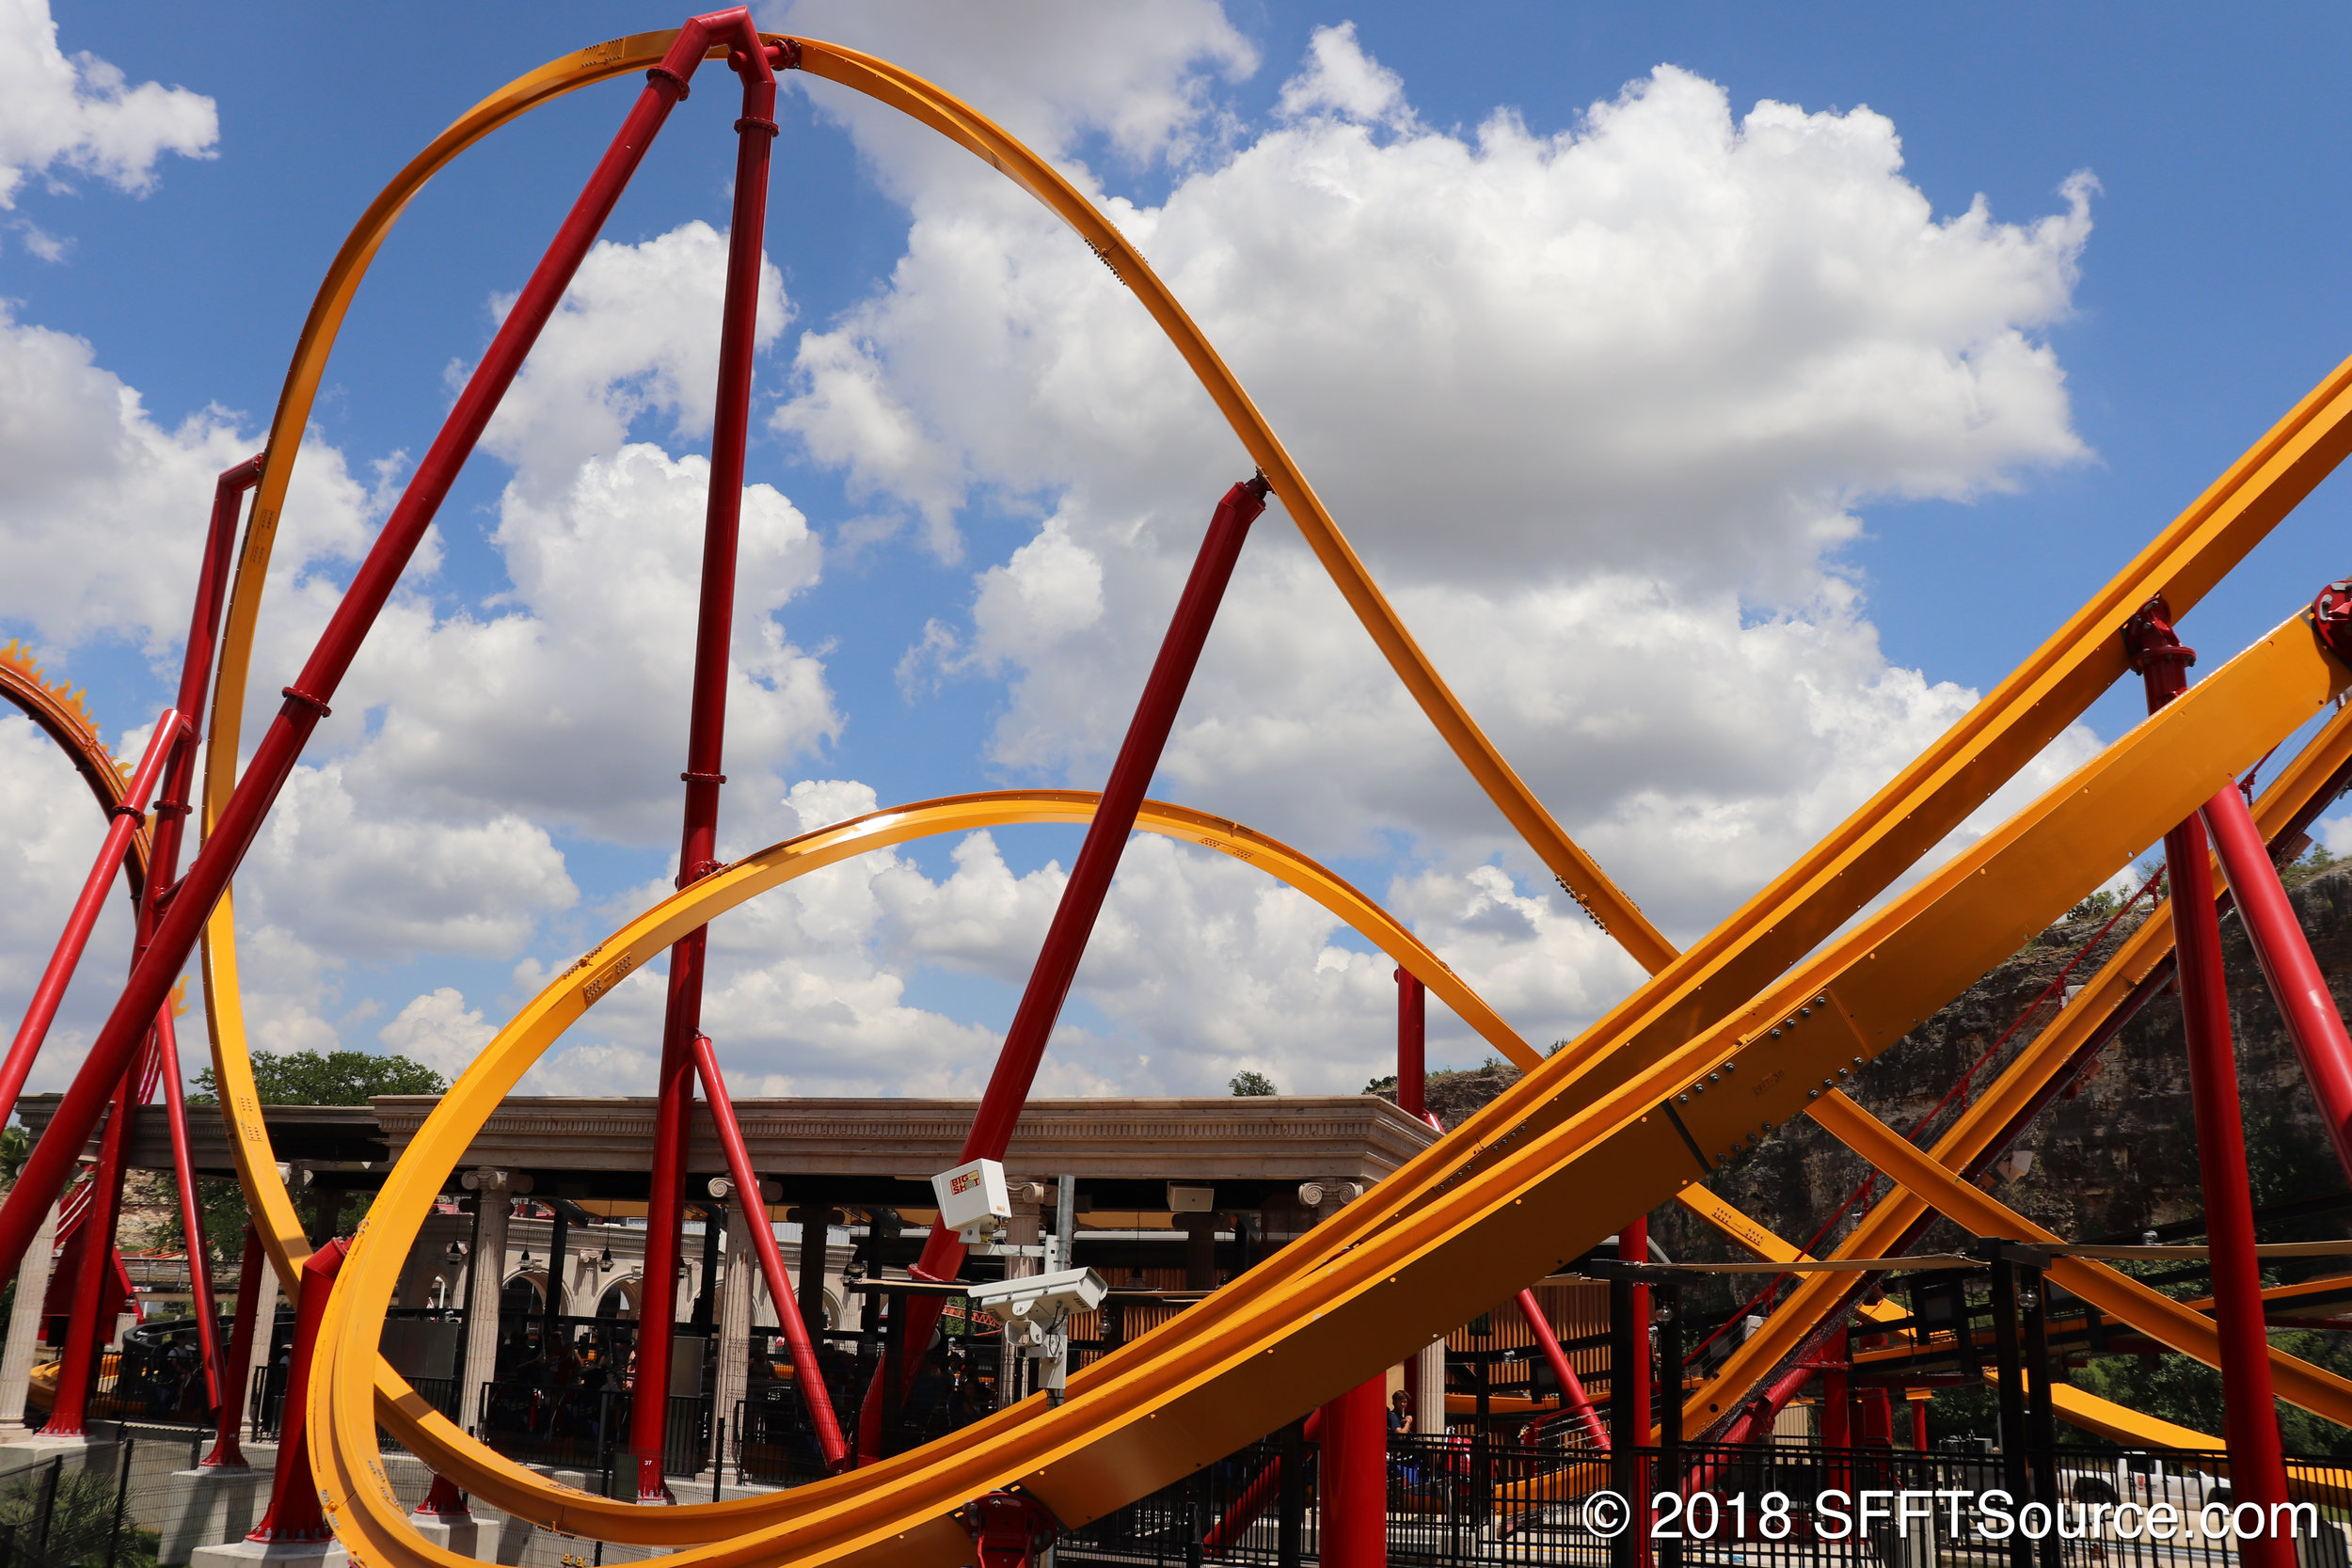 An overall look at some of the ride layout.